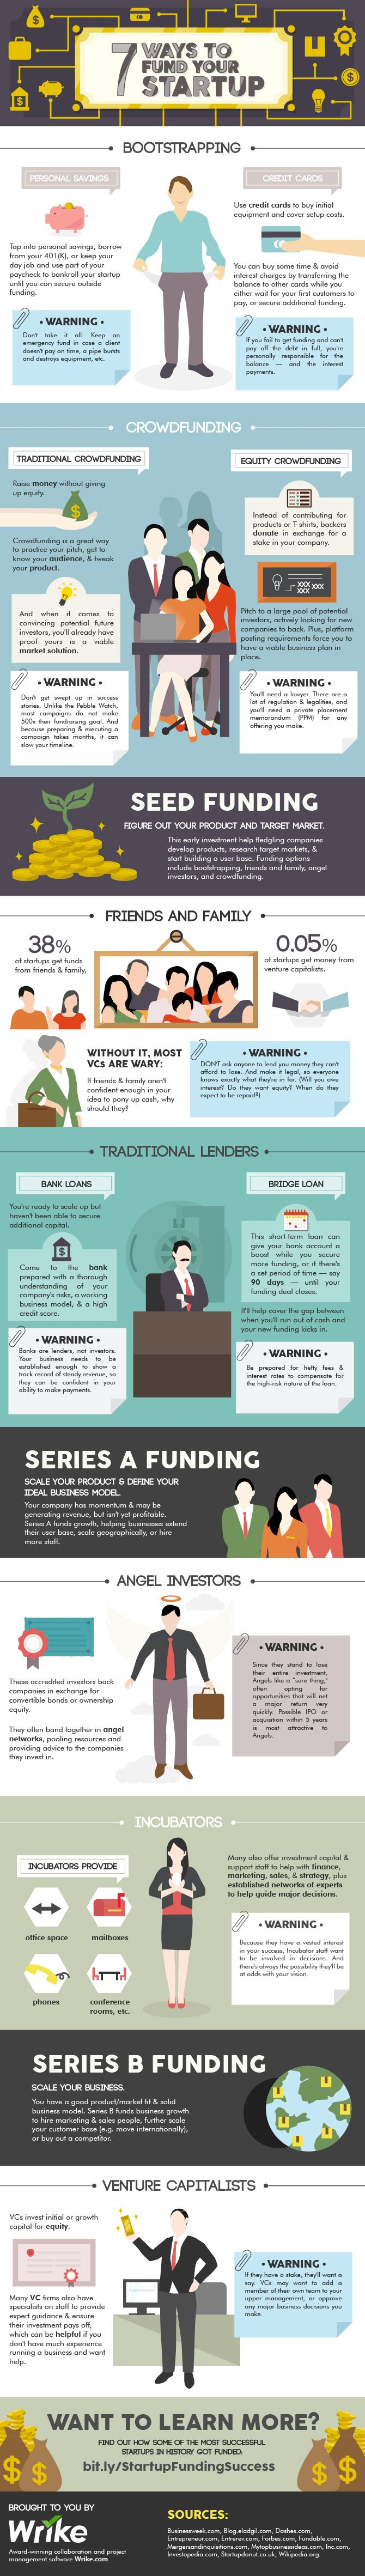 7 Ways To Fund Your Startup #infographic  Have a big network of executives and HR managers? Introduce us to them and we will pay for your travel. Email me at carlos@recruitingforgood.com